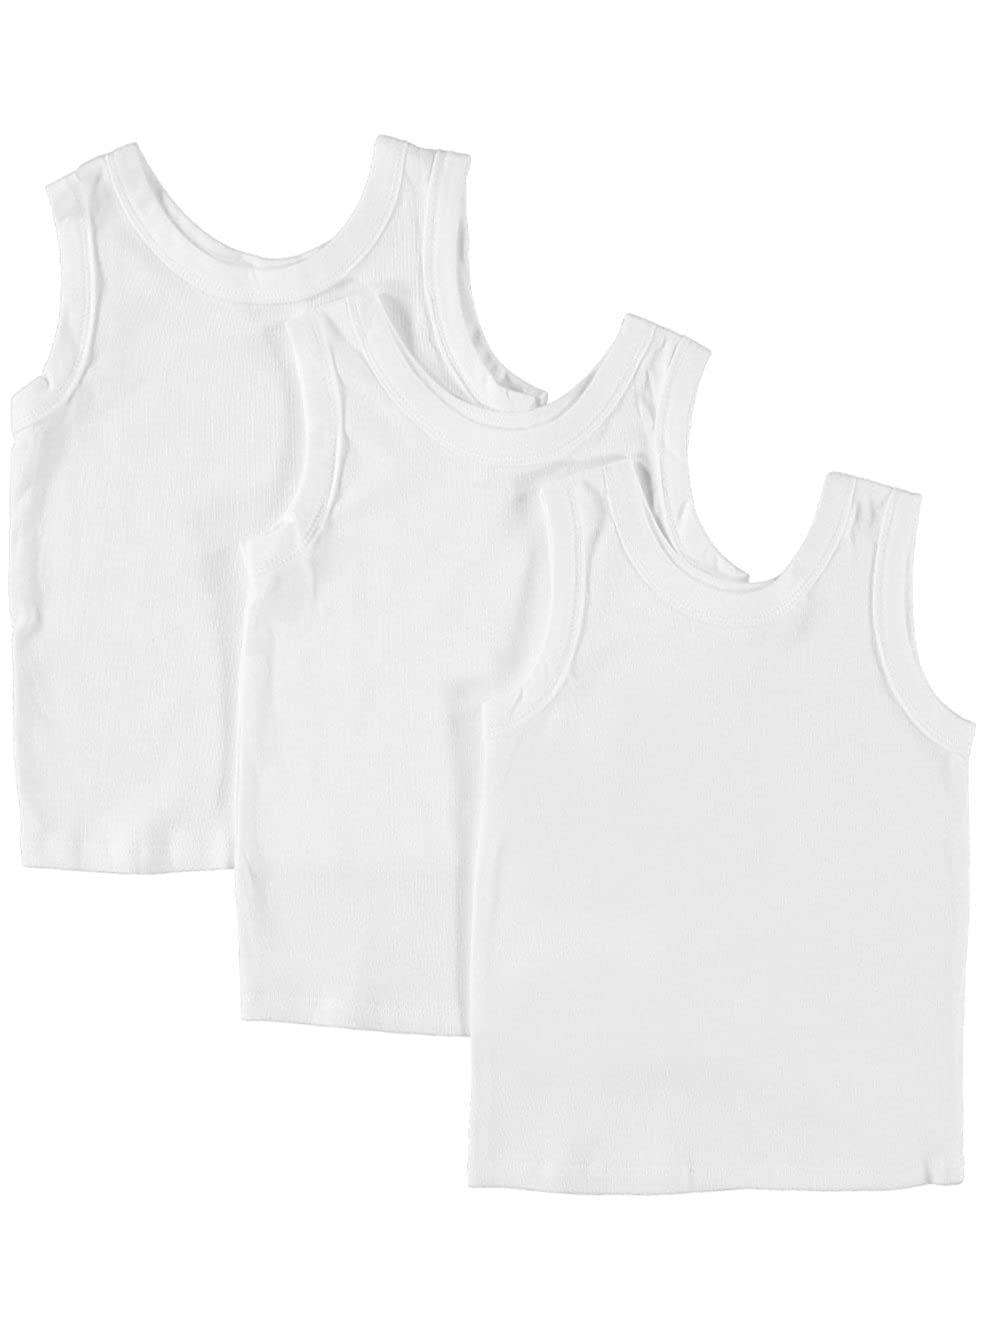 Big Oshi Tank Top 3-Pack